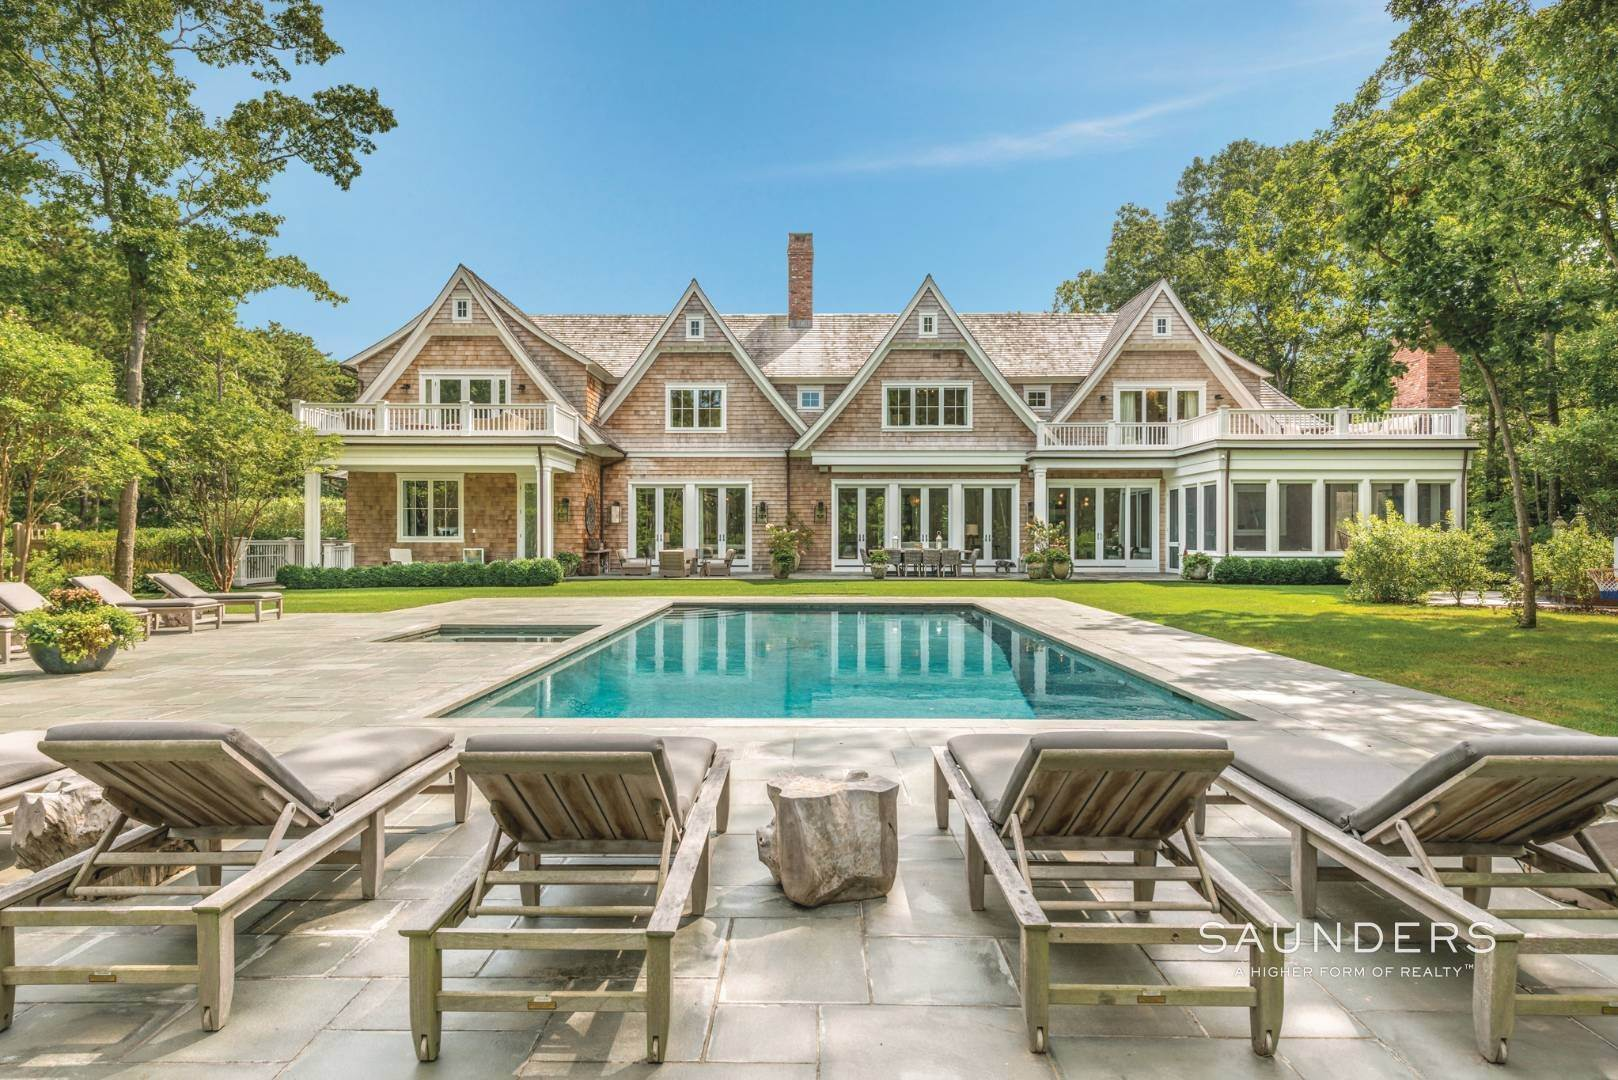 2. Single Family Homes for Sale at Rare Opportunity In Wainscott South With Tennis 23 Two Rod Highway, Wainscott, East Hampton Town, NY 11975